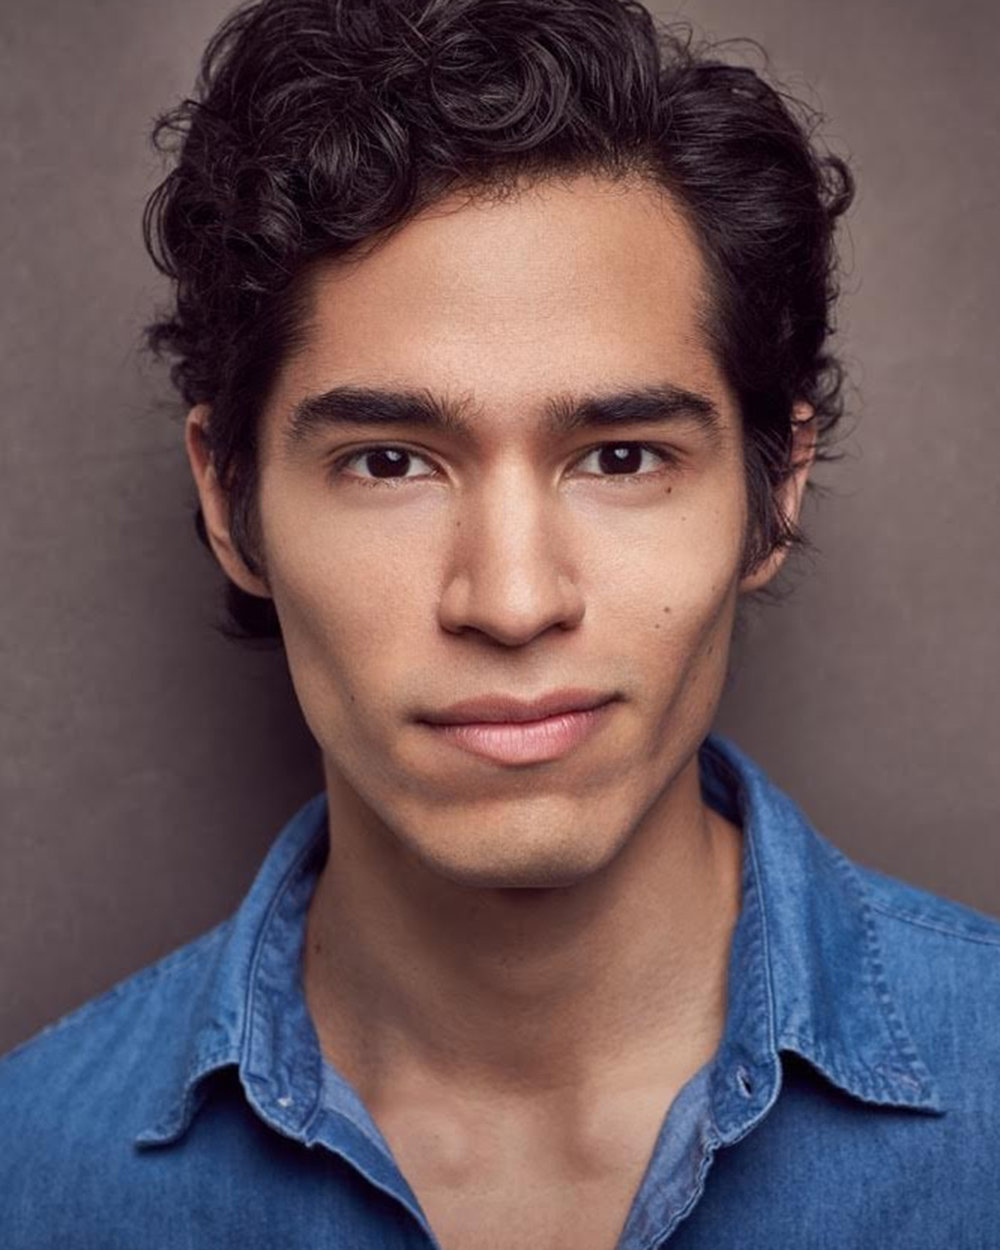 ROLANDO CHUSAN as Pedro - Rolando Chusan is a New York based actor. He grew up acting in the south Bronx where he continued to pursue his training. Rolando is a graduate of Fiorello H. Laguardia High School, Hunter College, and most recently the Maggie Flanigan two year conservatory.